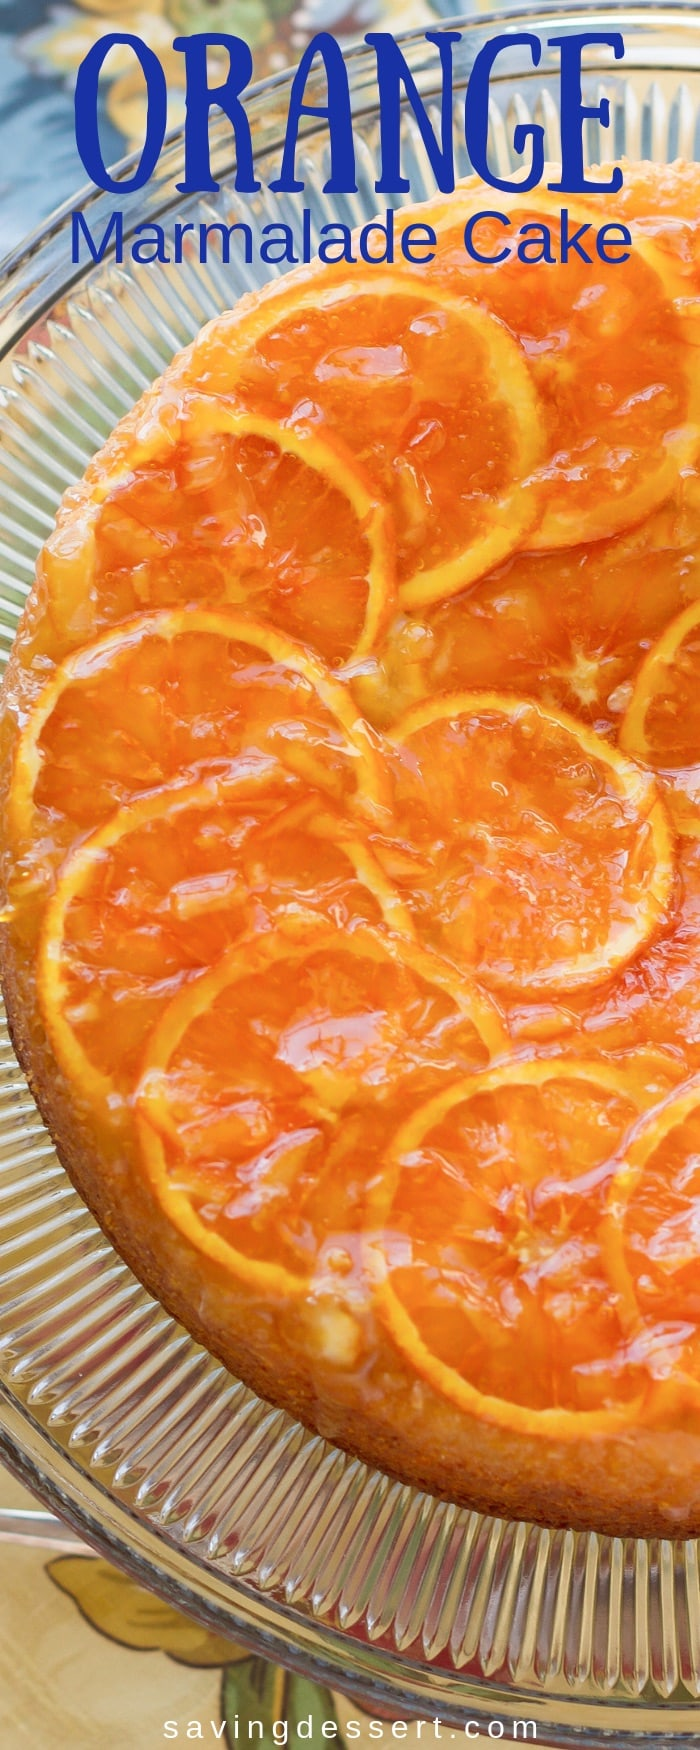 Orange Marmalade Cake ~ Moist and tender and loaded with orange flavor - a ray of sunshine on a plate! #orangecake #cake #marmaladecake #orangemarmaladecake #easycake #orange